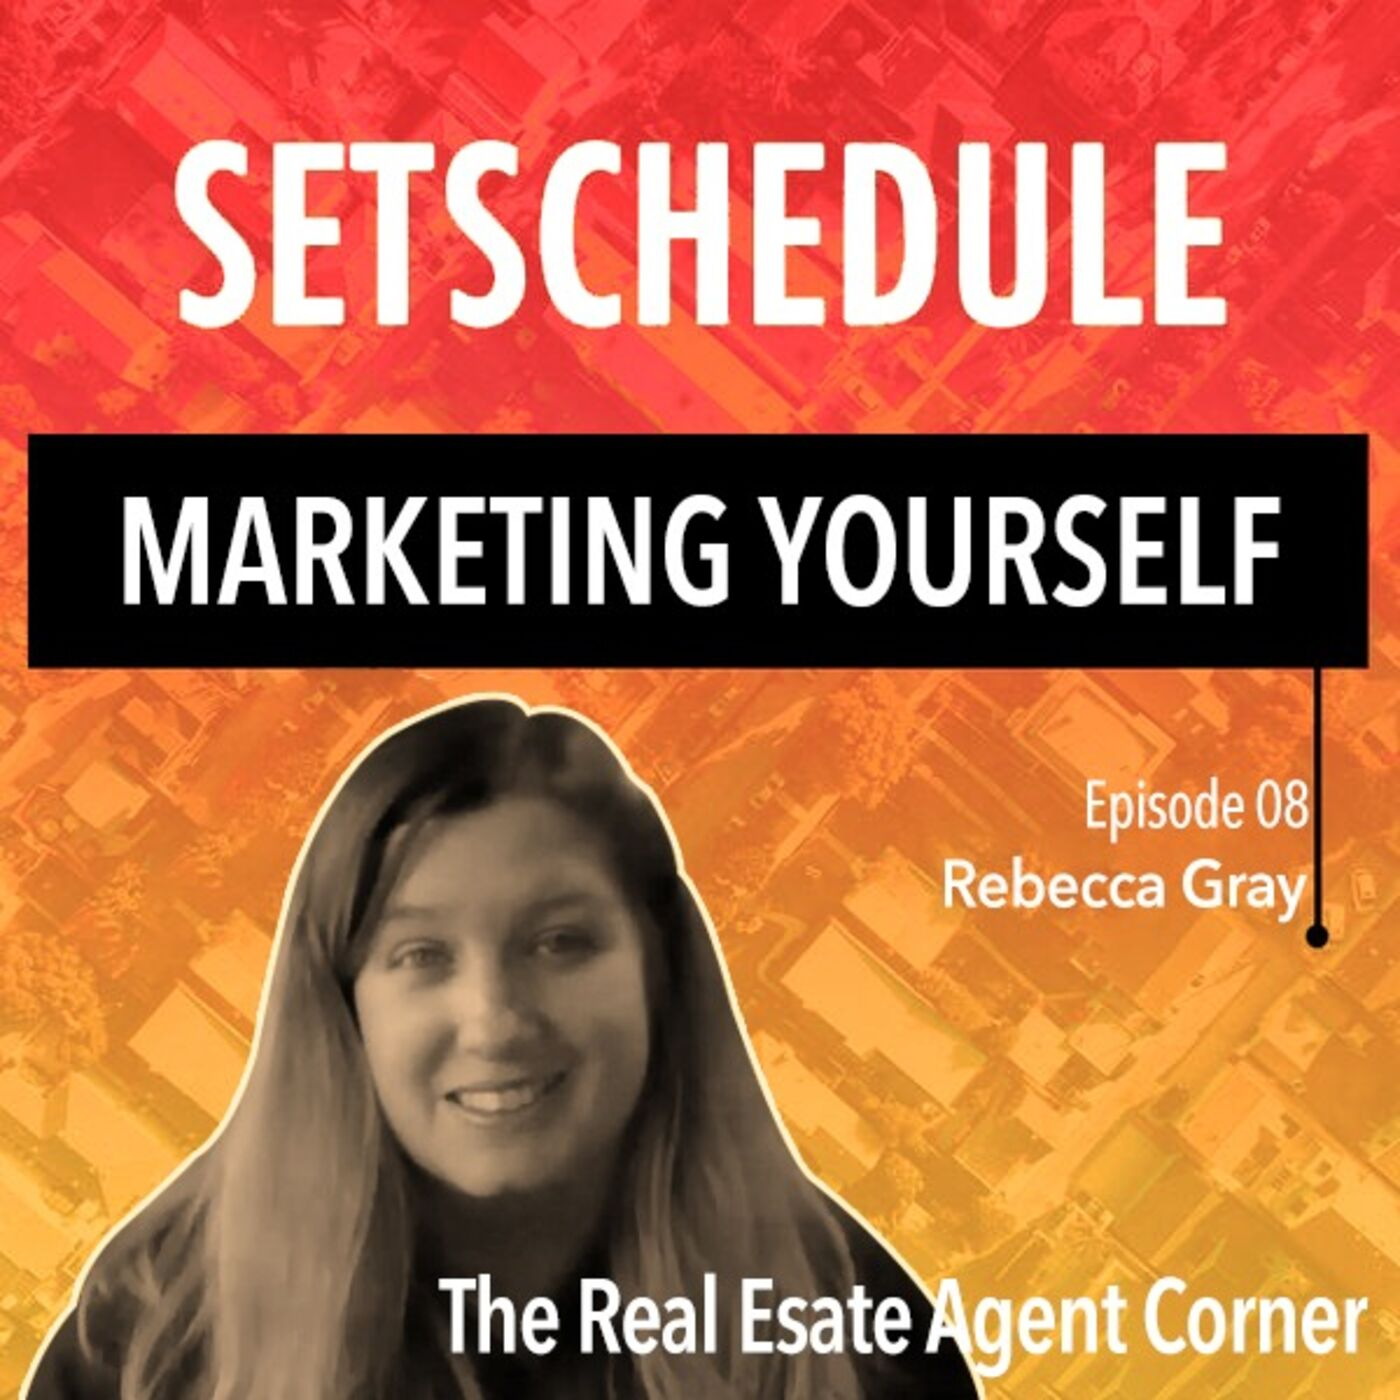 The Importance of Marketing Yourself - Rebecca Gray